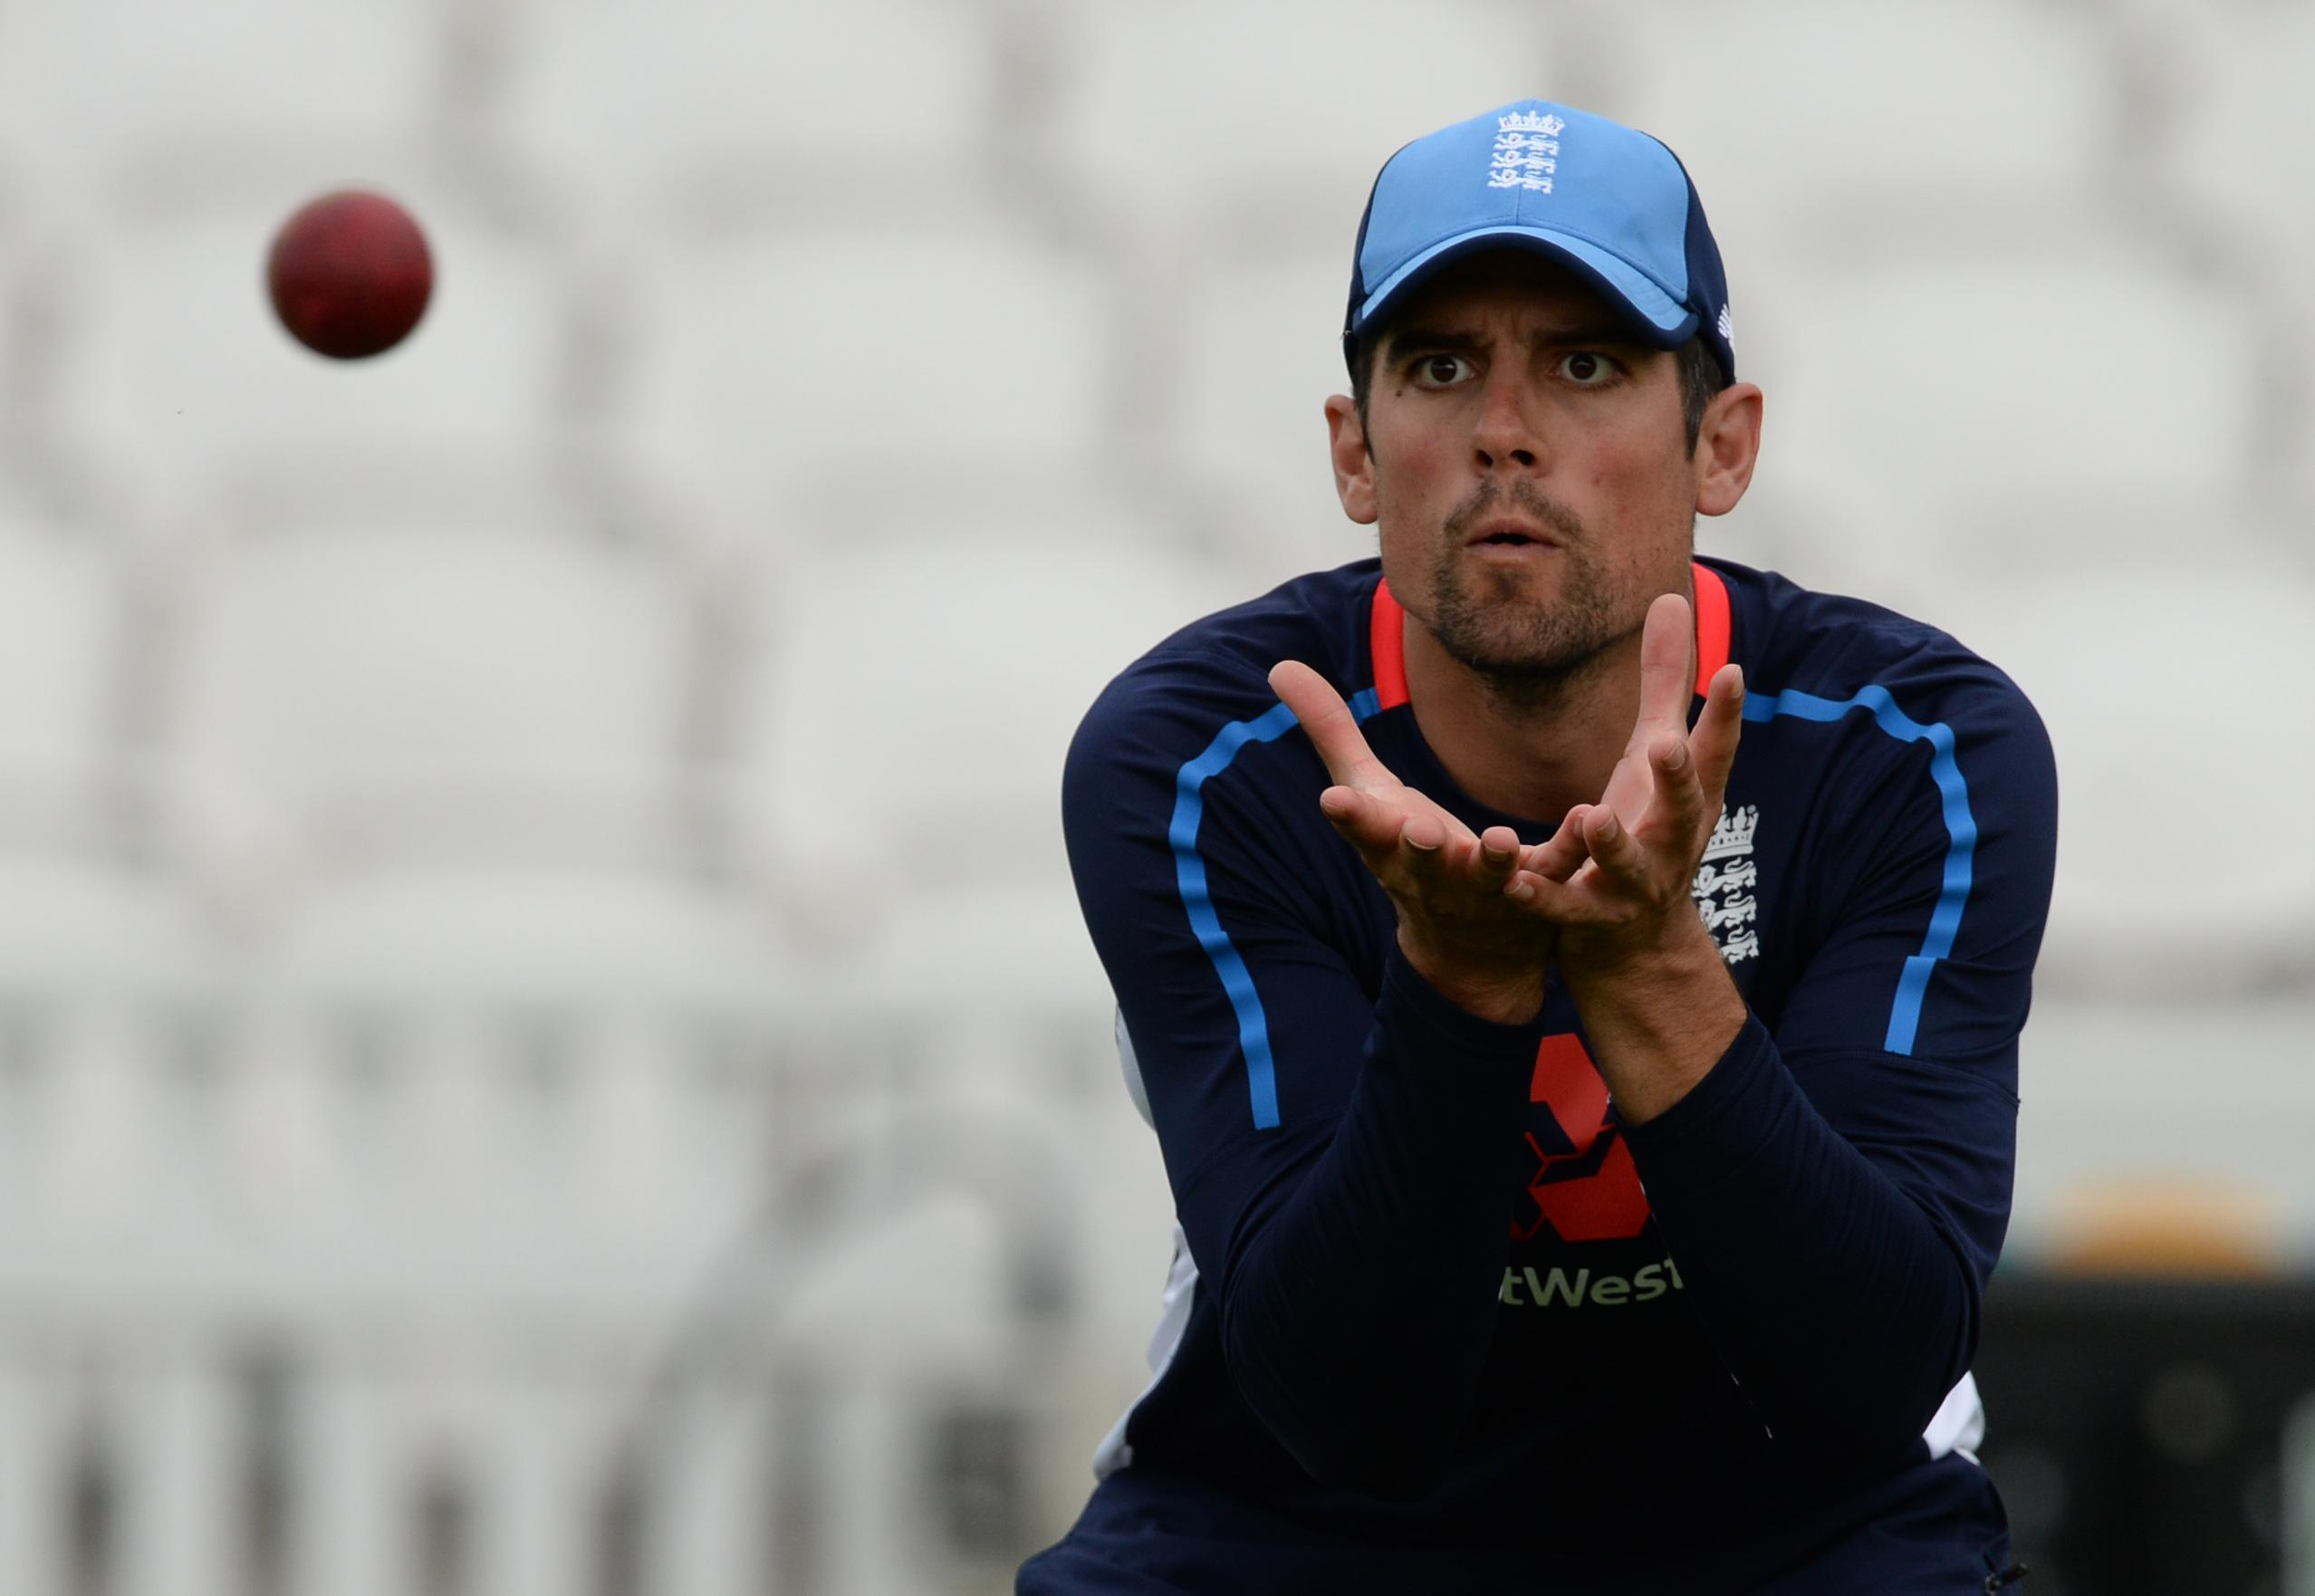 Alastair Cook will play his final Test against India